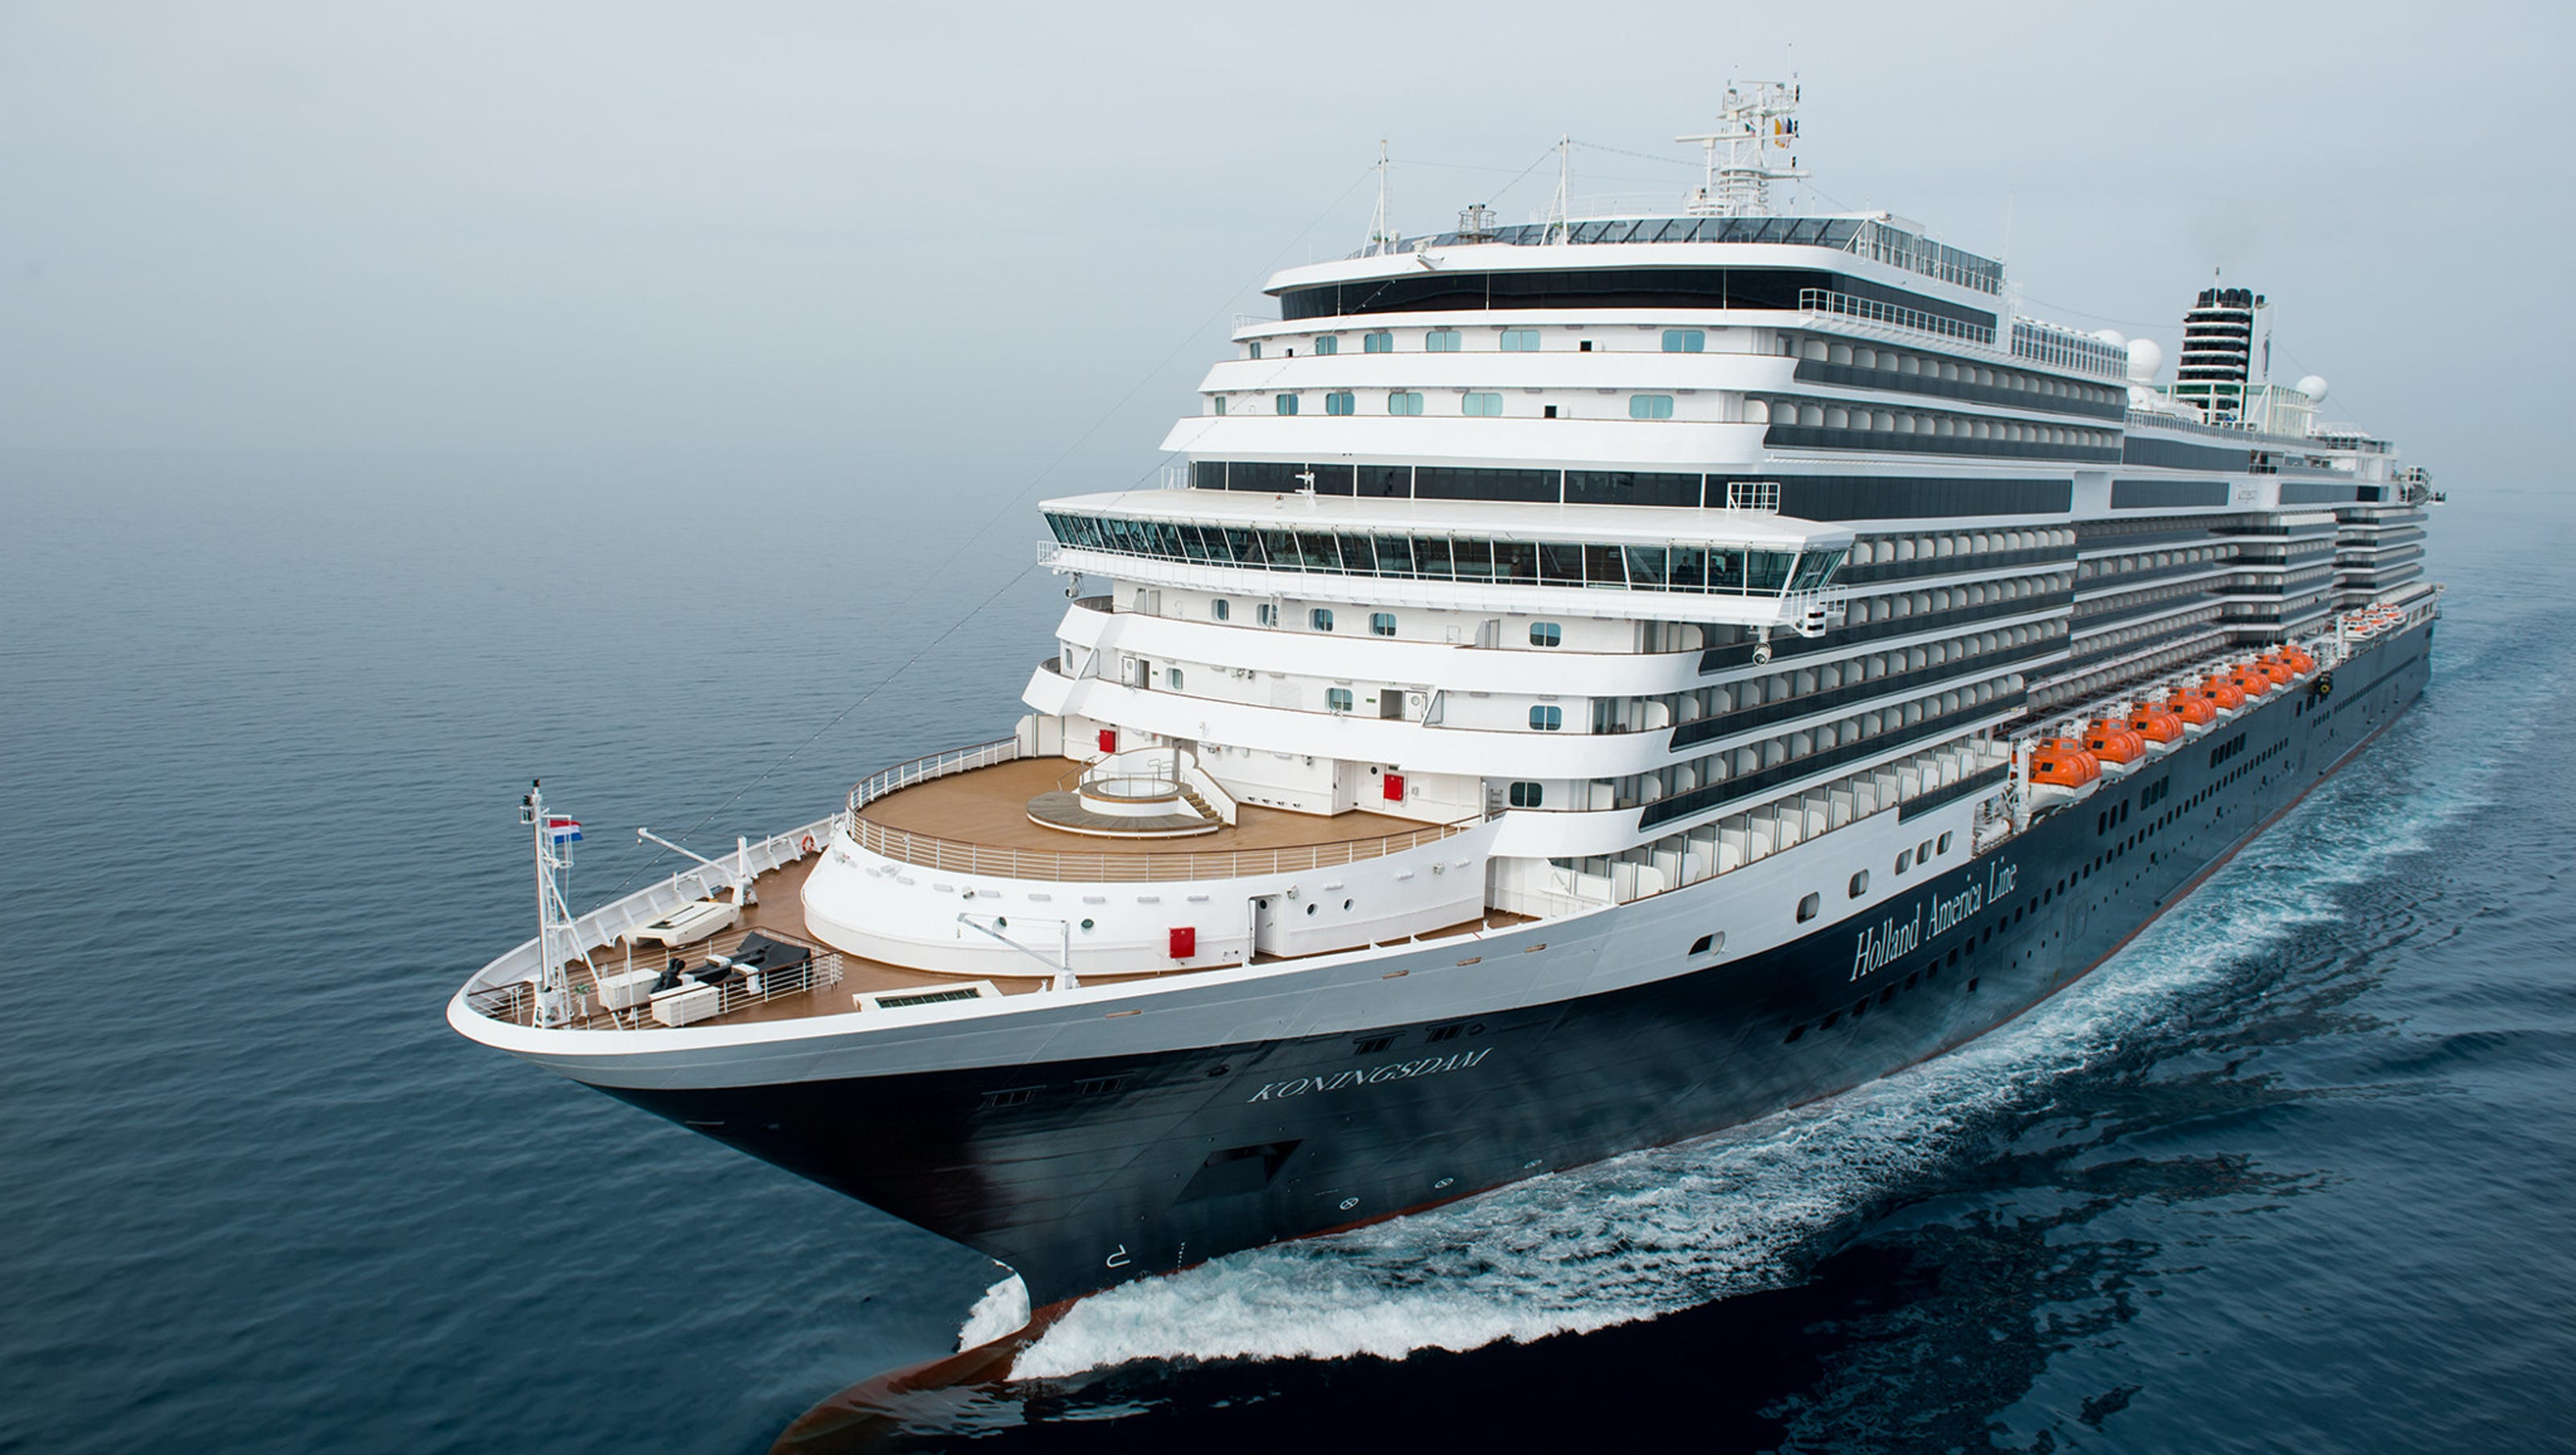 Nieuw Statendam: New Holland America ship to debut in late ...